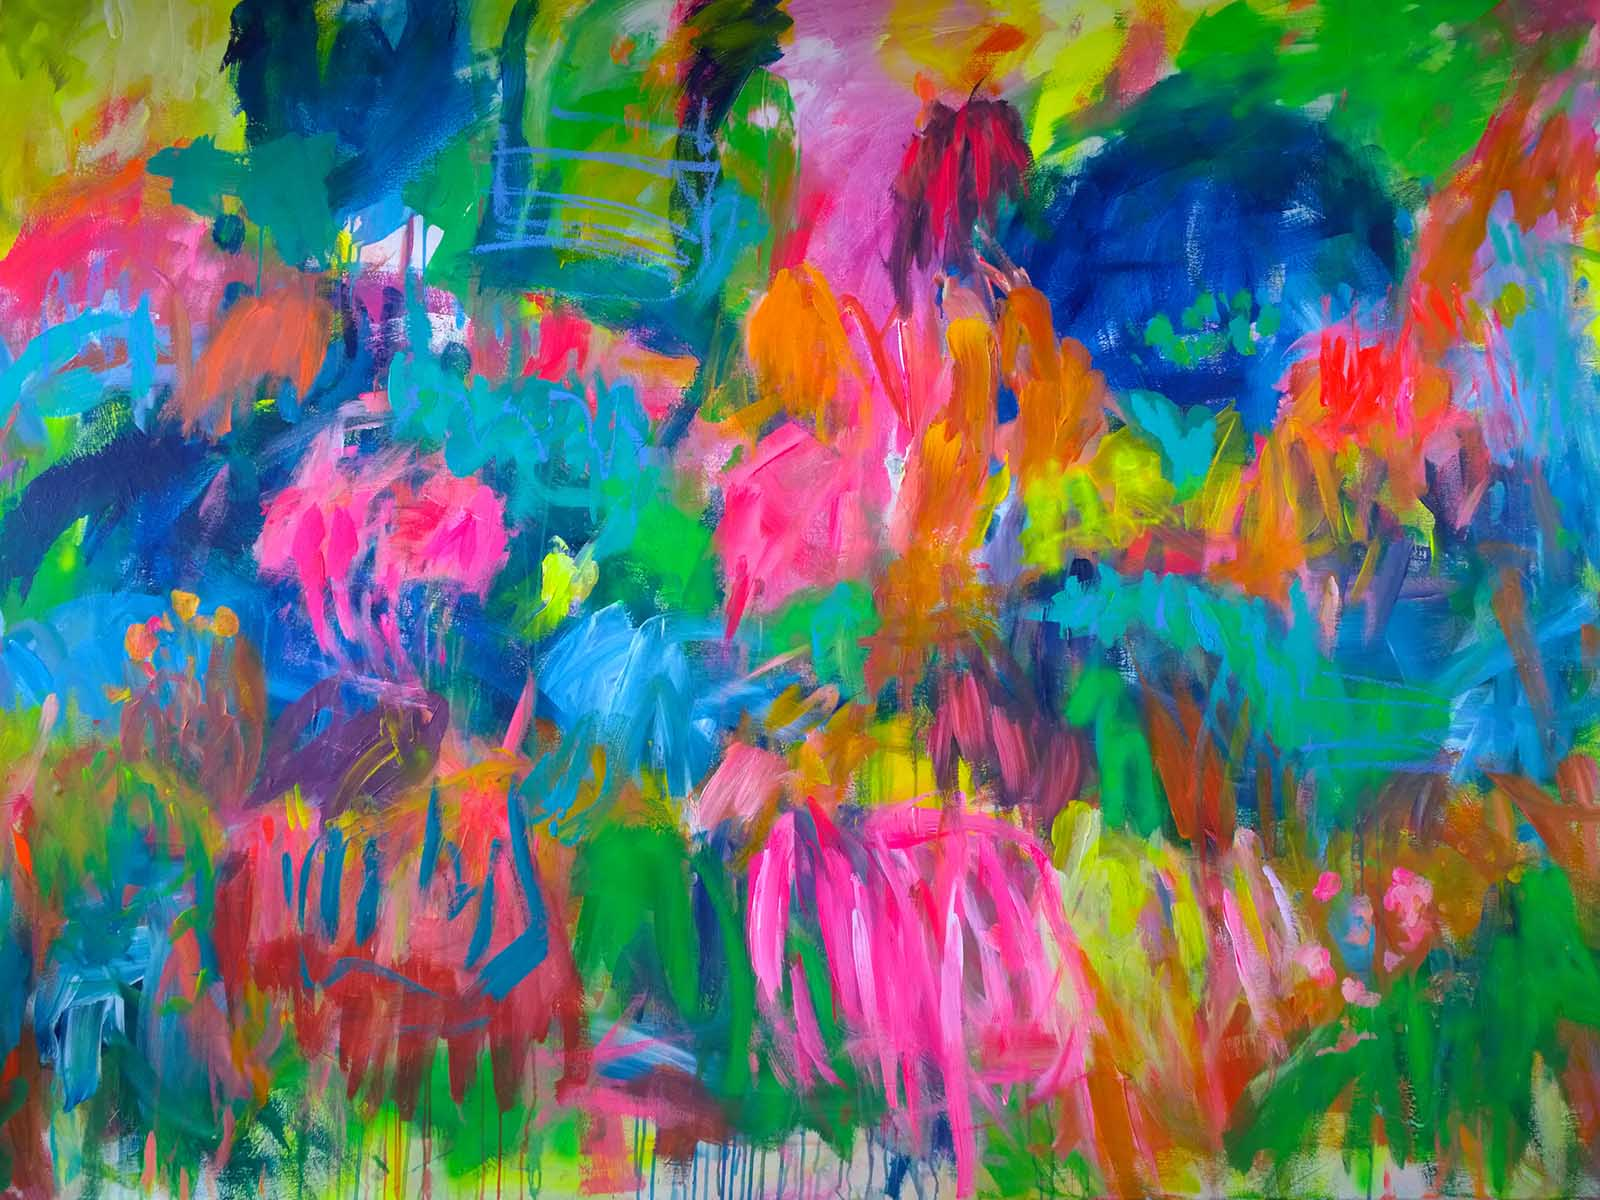 colour migrations no. 2/2016, acrylics/canvas, 150x200cm